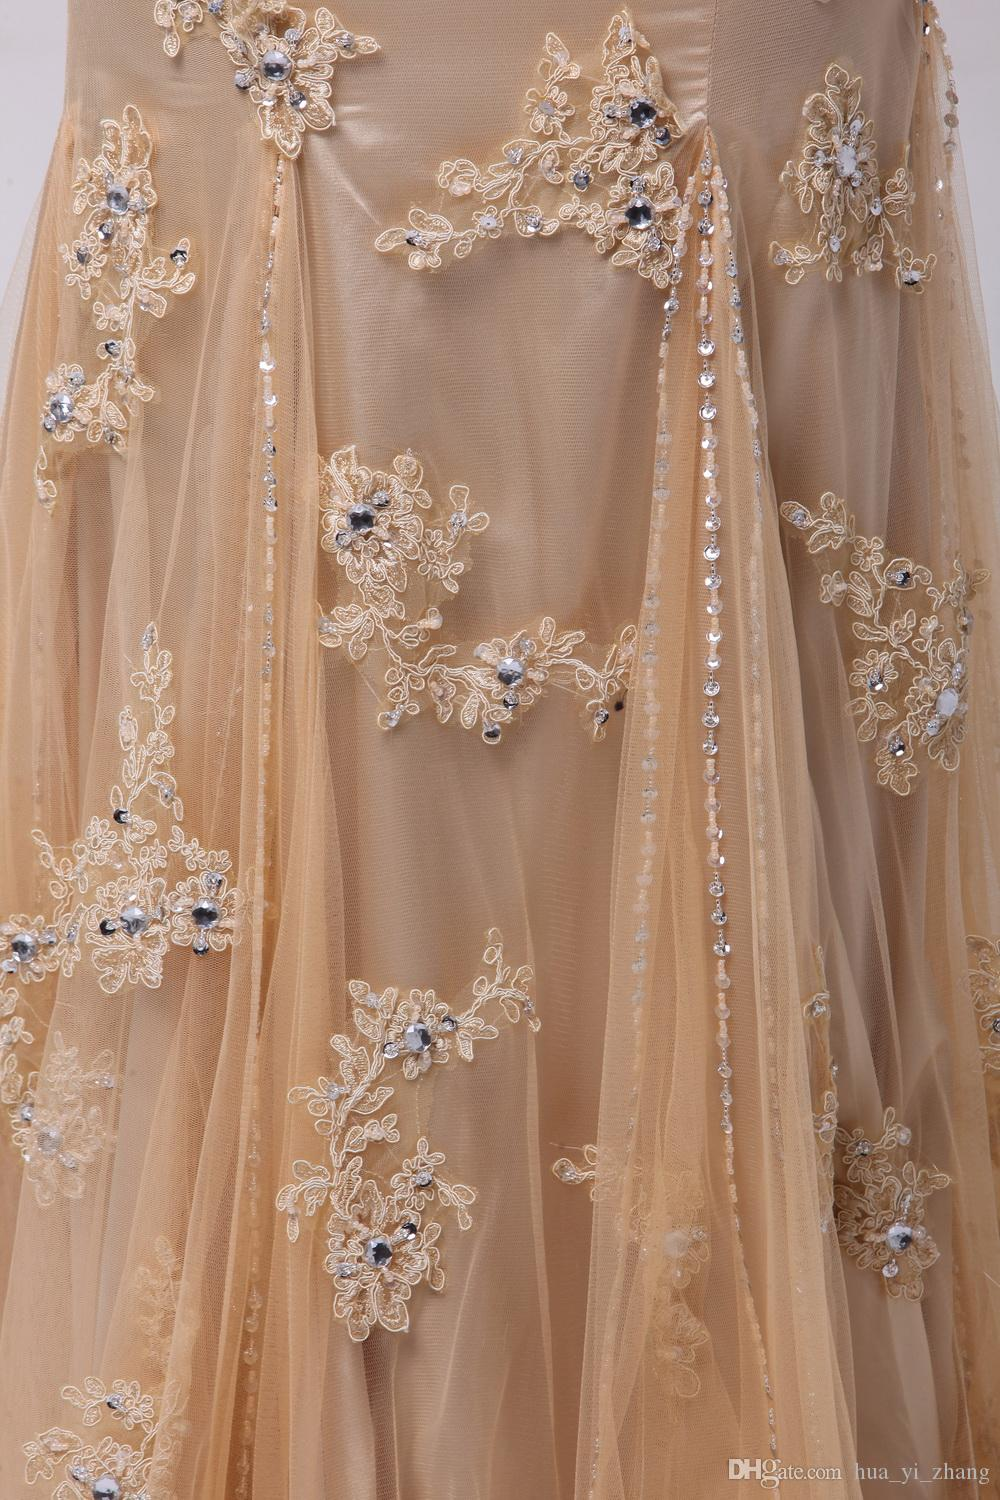 2016 Champagne Evening Dresses Beaded Spaghetti Beaded Bodice Ruffle Tulle Lace Appliques Skirts Sleeveless Real Pictures Mermaid Prom Gowns